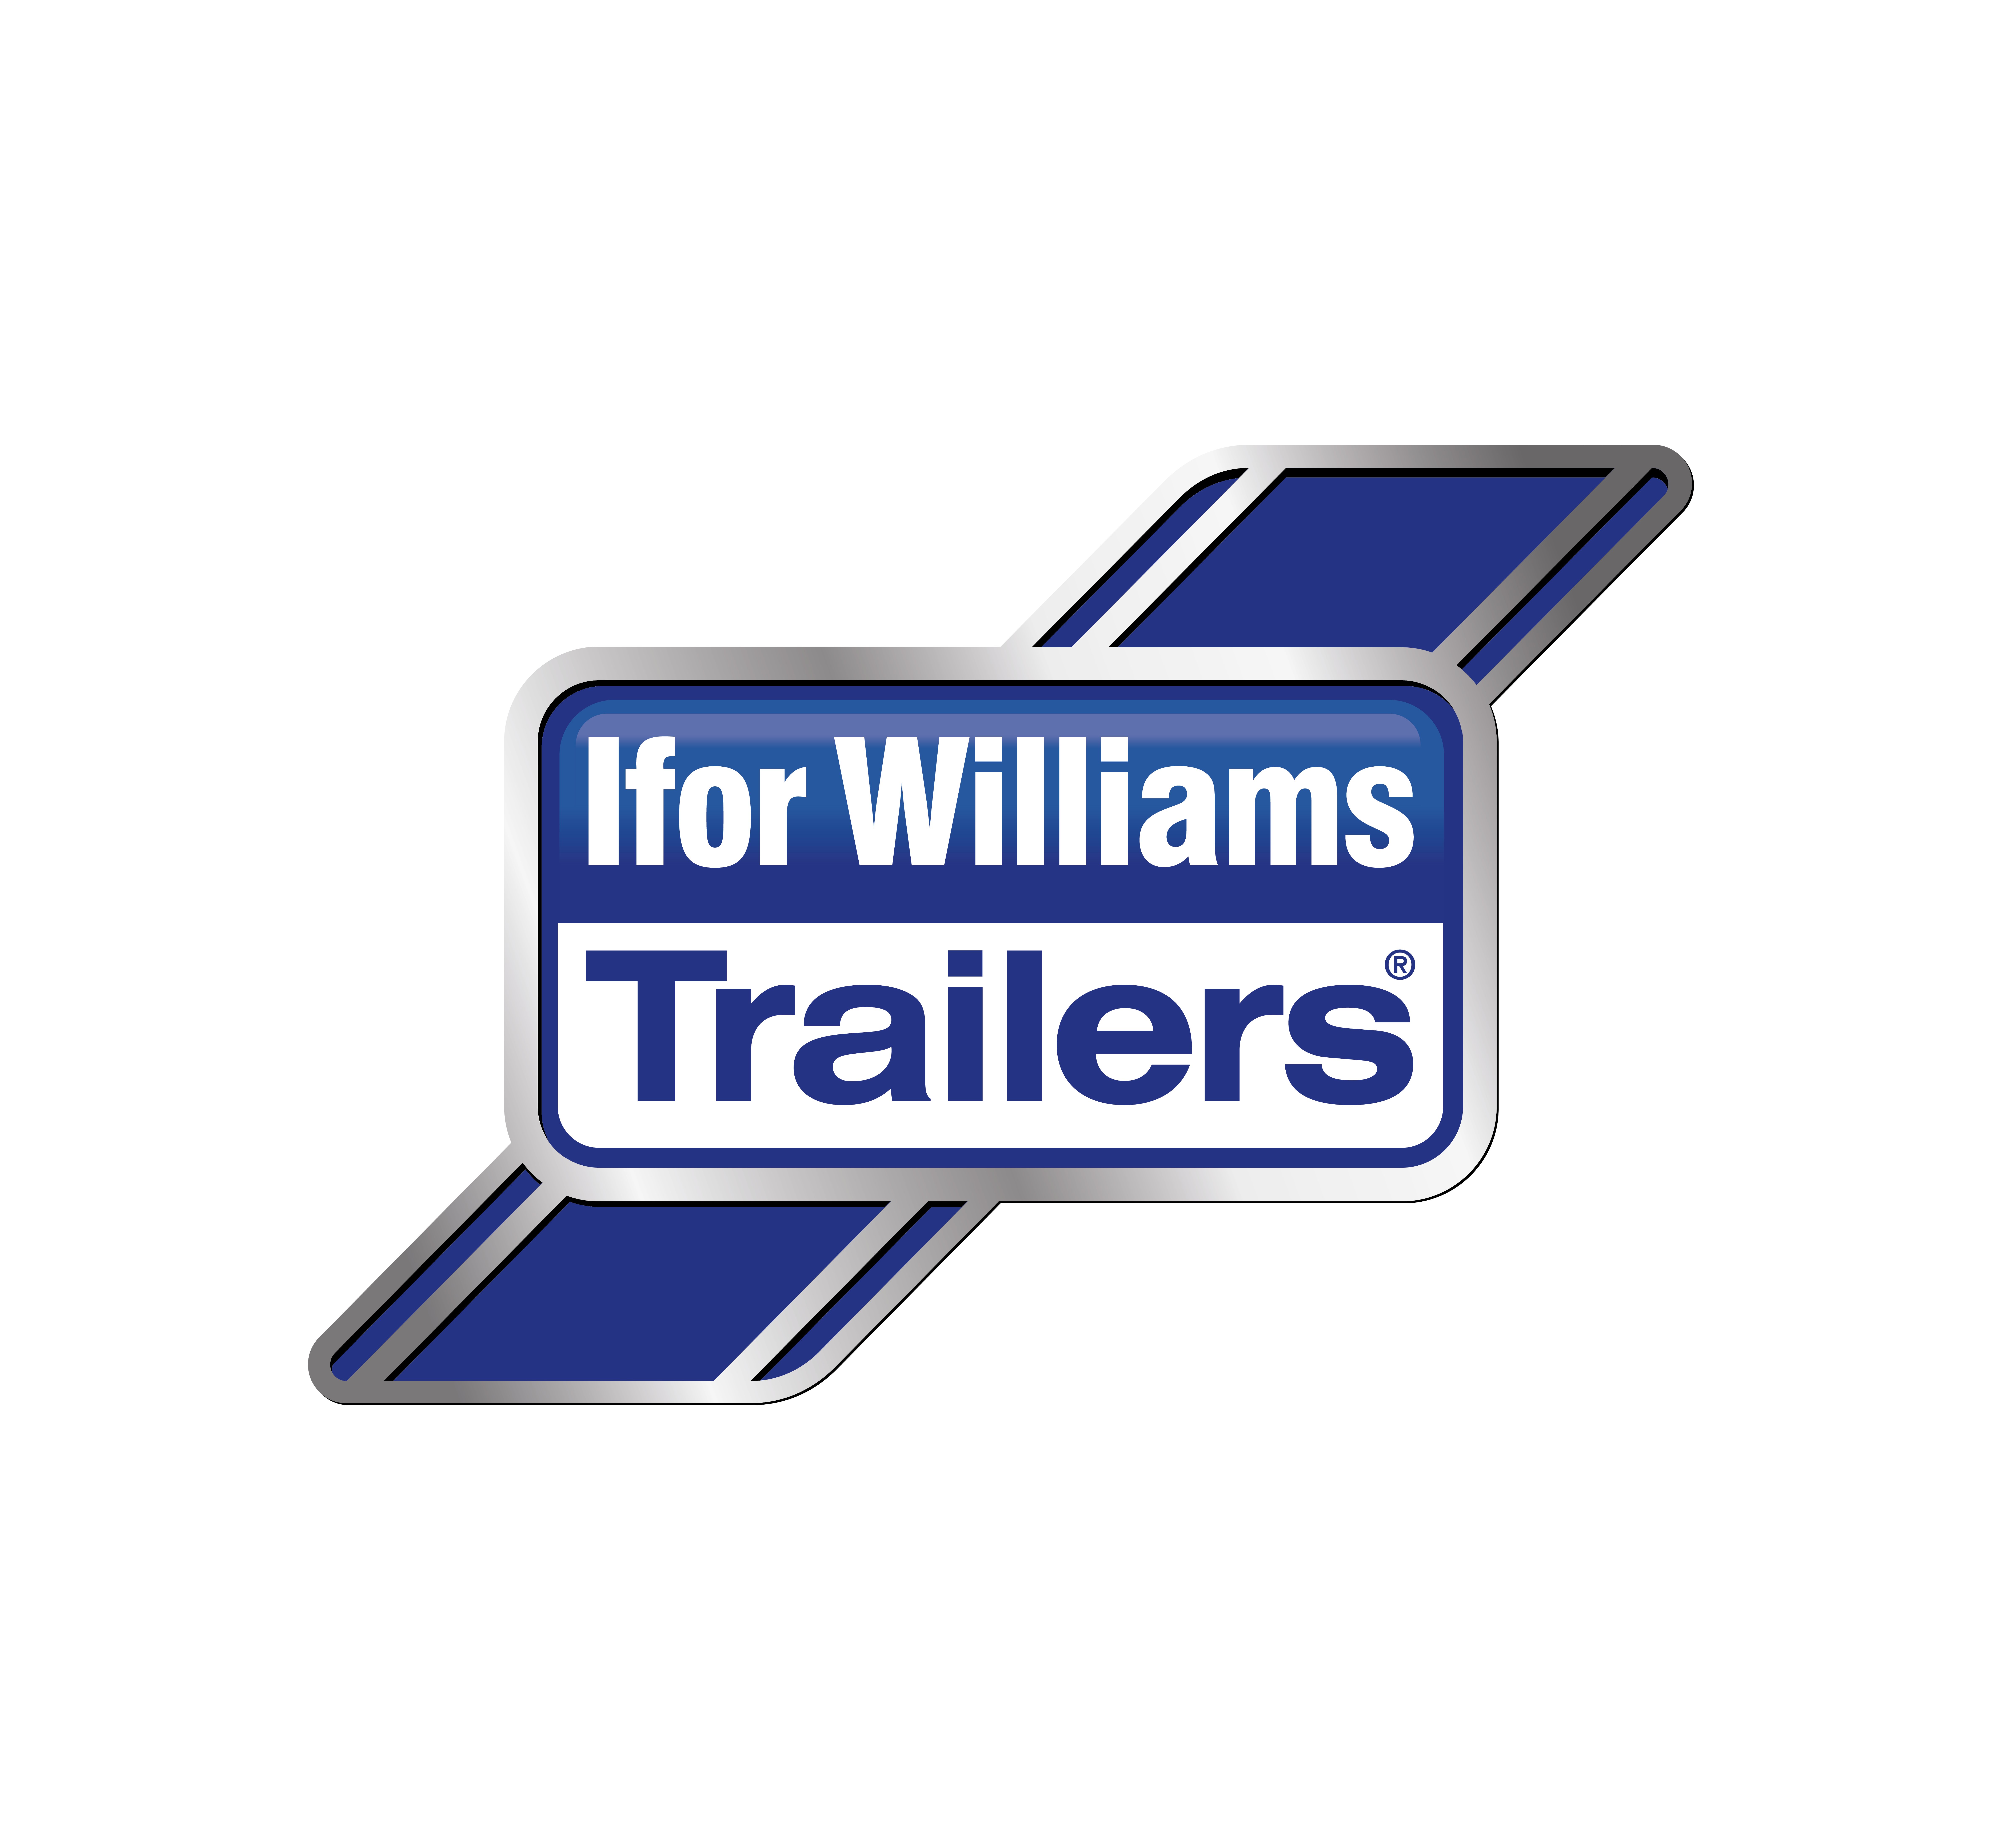 Logo Ifor Williams Norge AS